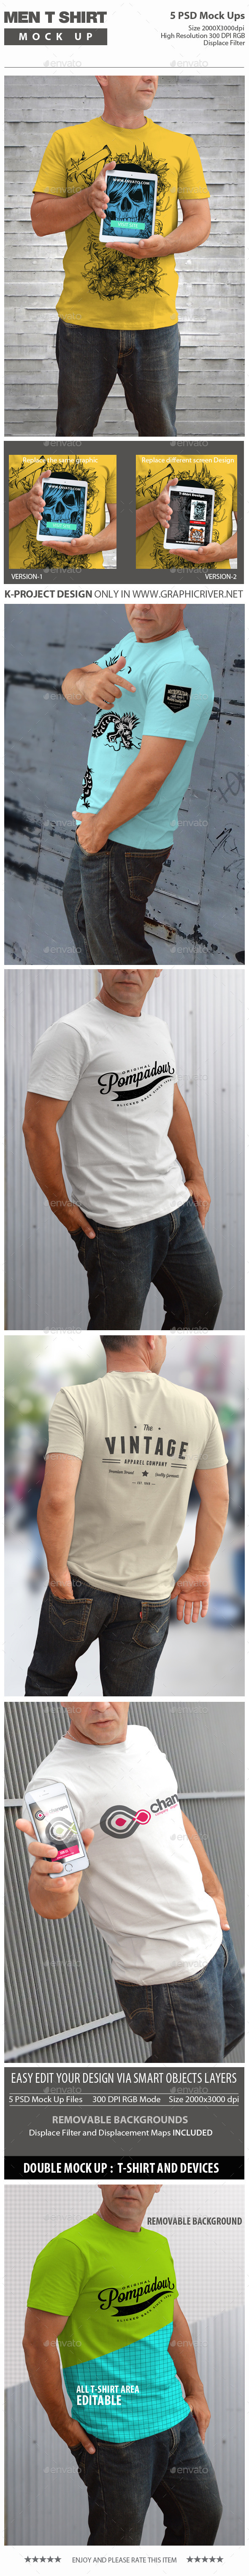 GraphicRiver Men T-Shirt Mock Up 11909795